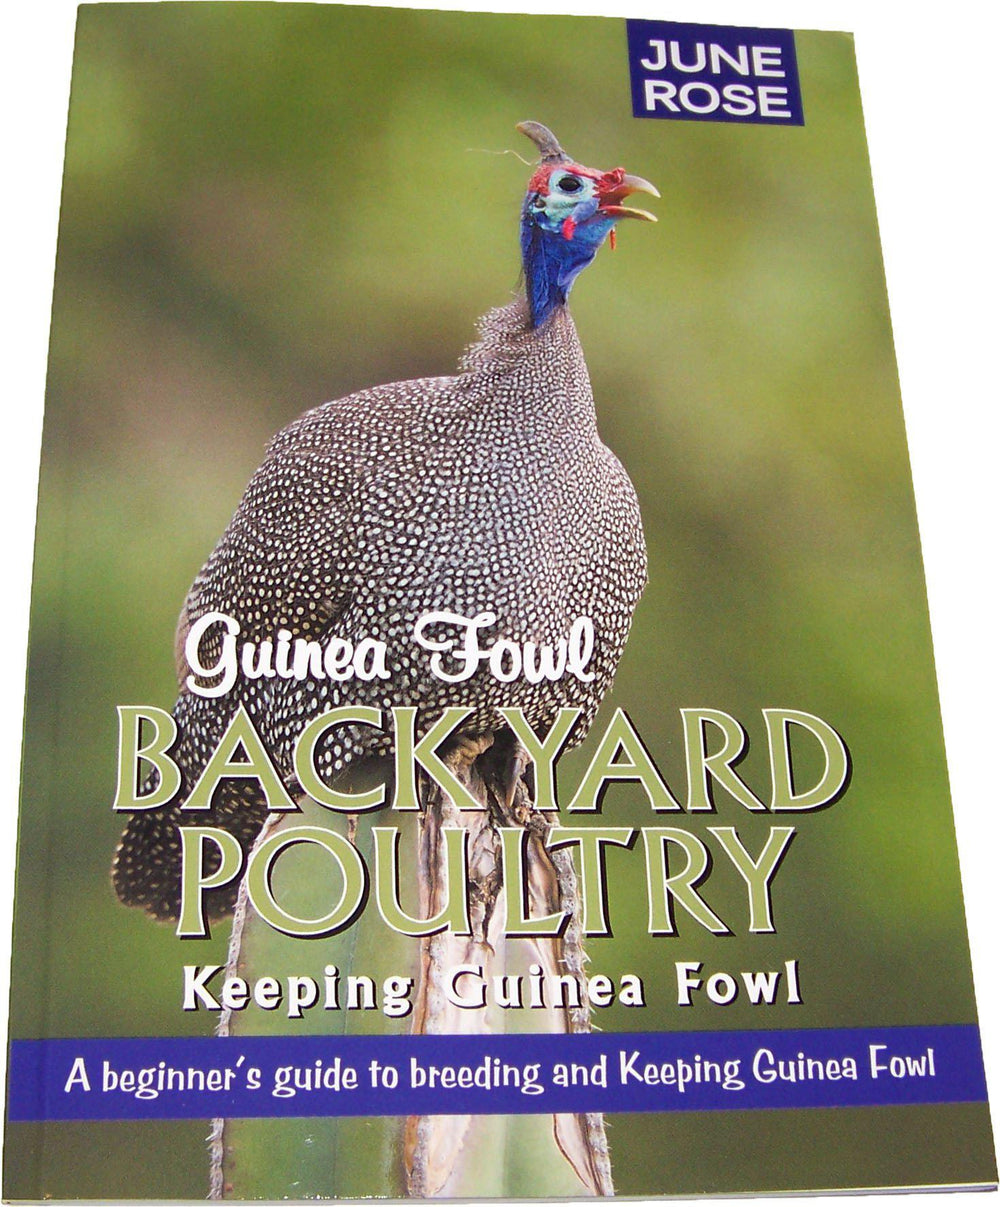 Book-Guinea Fowl, Backyard Poultry: Keeping Guinea Fowl - Critter Country Supply Ltd.